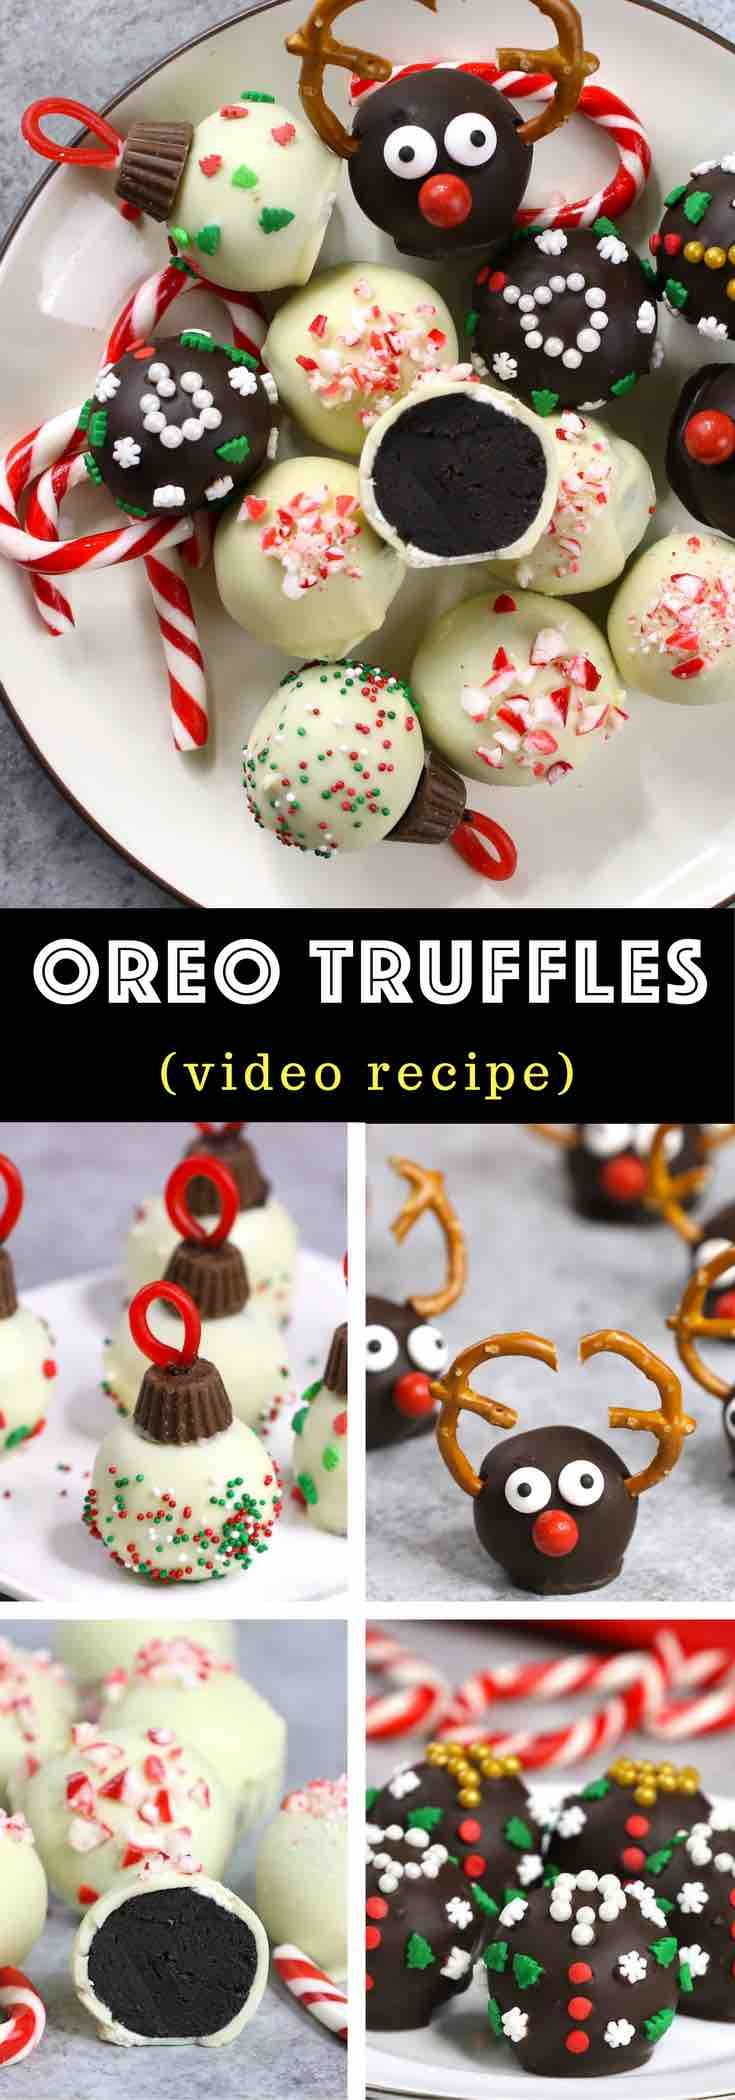 Oreo Truffles - the easiest and most beautiful dessert you will ever make! Only 4 ingredients required: Oreos, cream cheese, white chocolate and dark semi-sweet chocolate. Sprinkles are optional. Oreo crumbs are mixed with creamy cheesecake, and then covered with melted chocolate. So Good! Quick and easy recipe, party desserts. No Bake. Vegetarian. Video recipe. | Tipbuzz.com